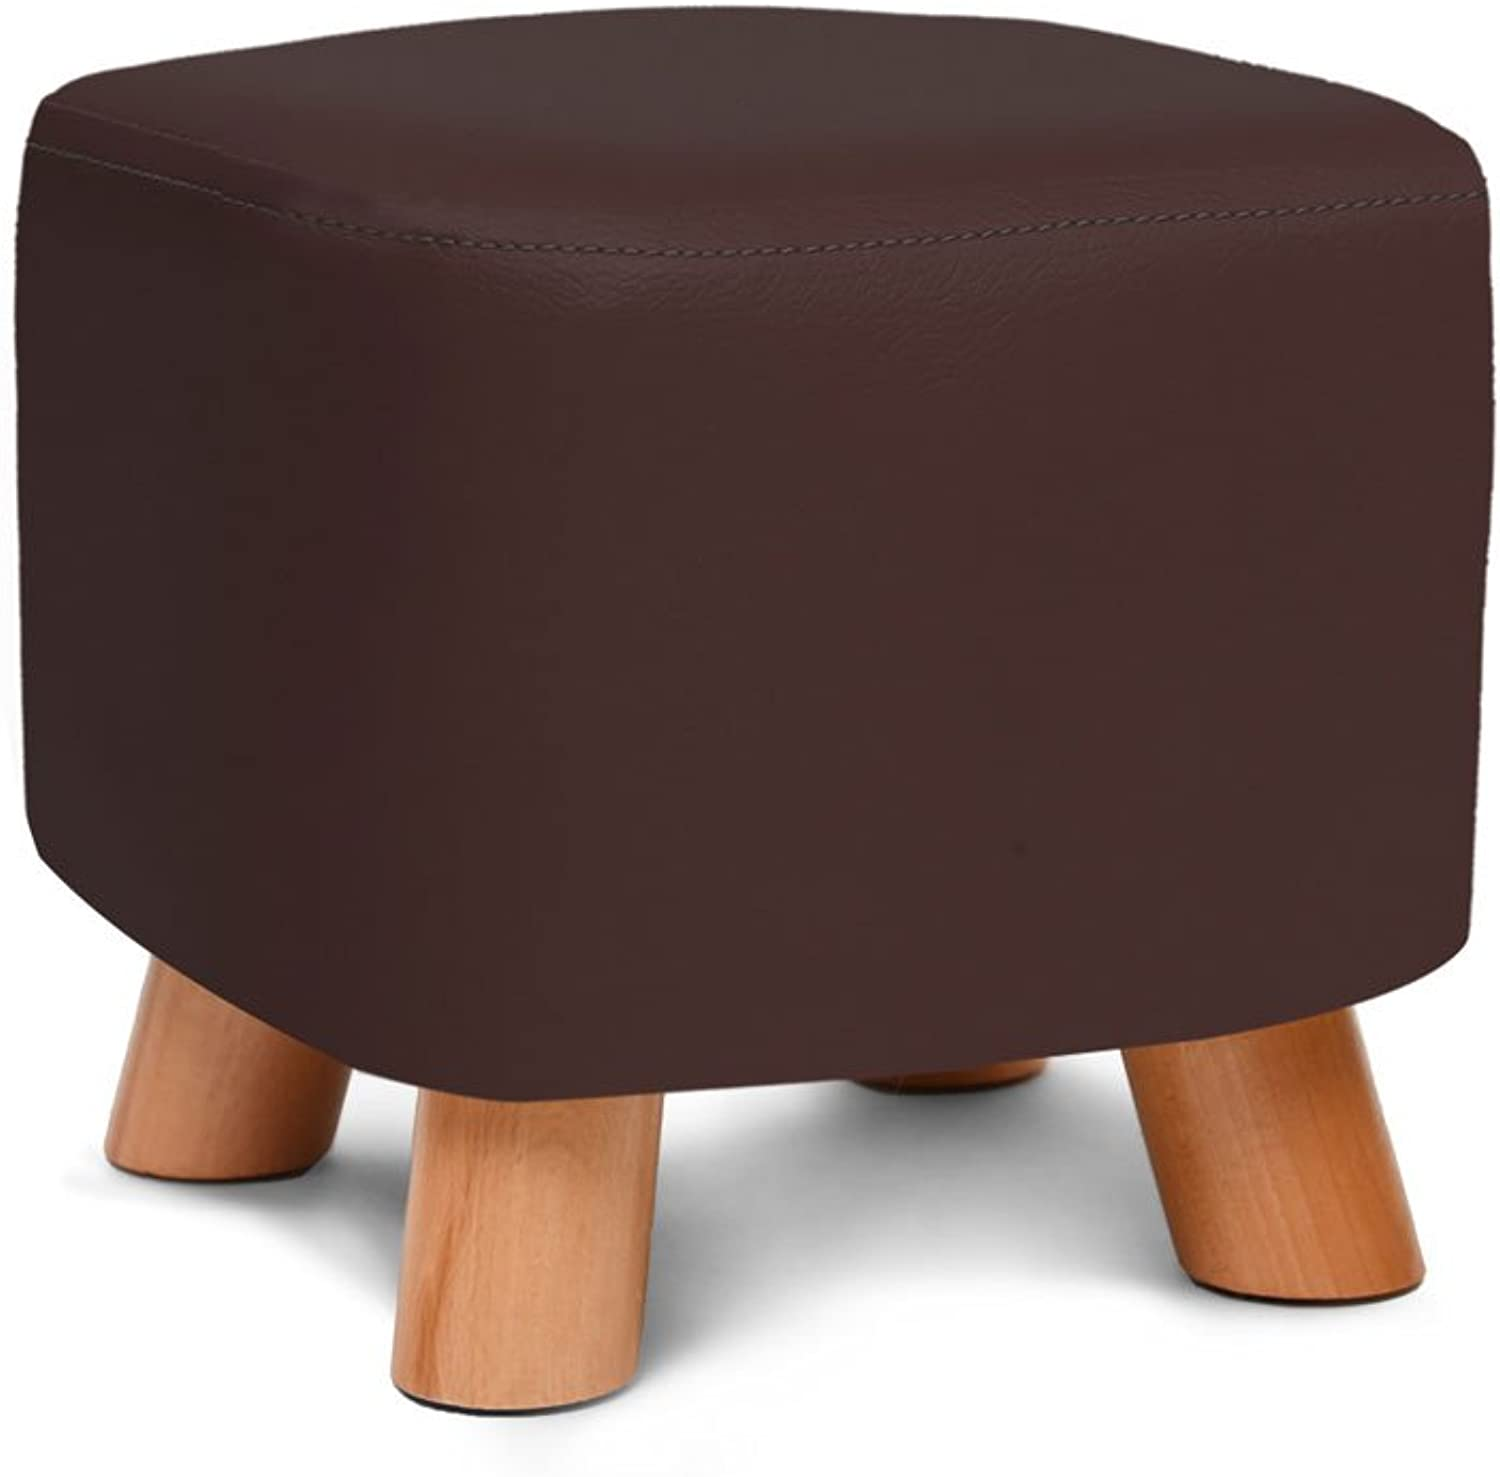 YE ZI Chair - Chair-Home Solid Wood Multifunctional Fabric Storage Stool Comfortable and Durable (color   Brown)